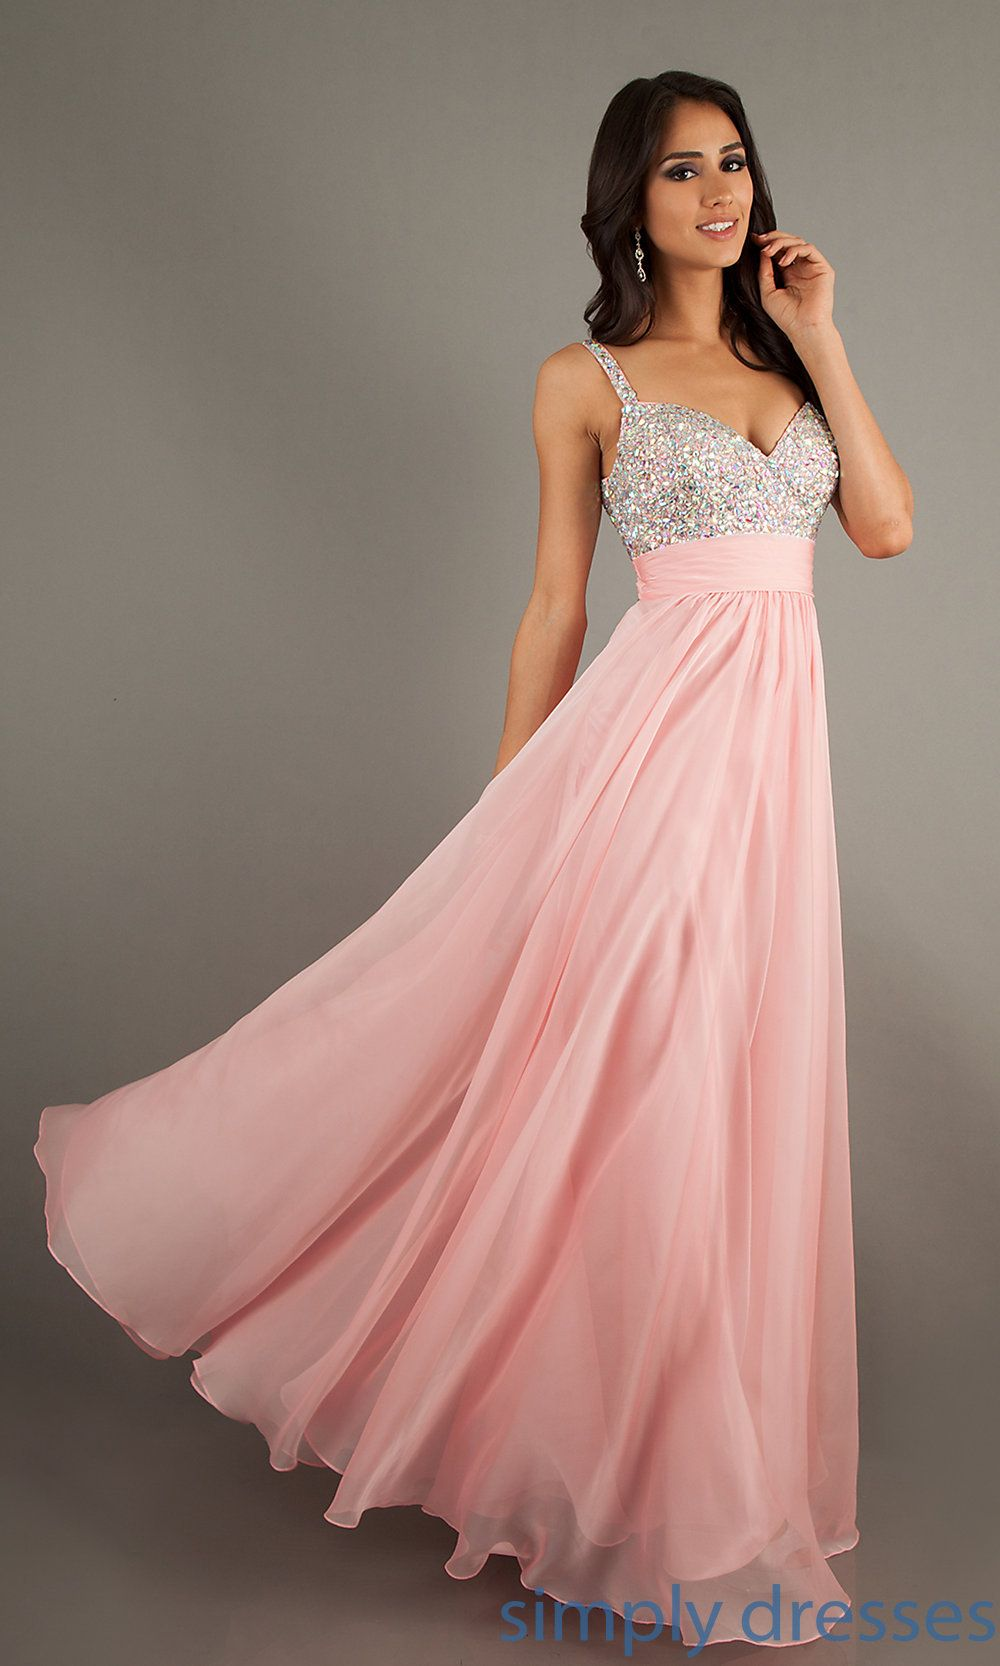 LF-16802 - La Femme Beaded Long Formal Dress | Me gustas y Ropa